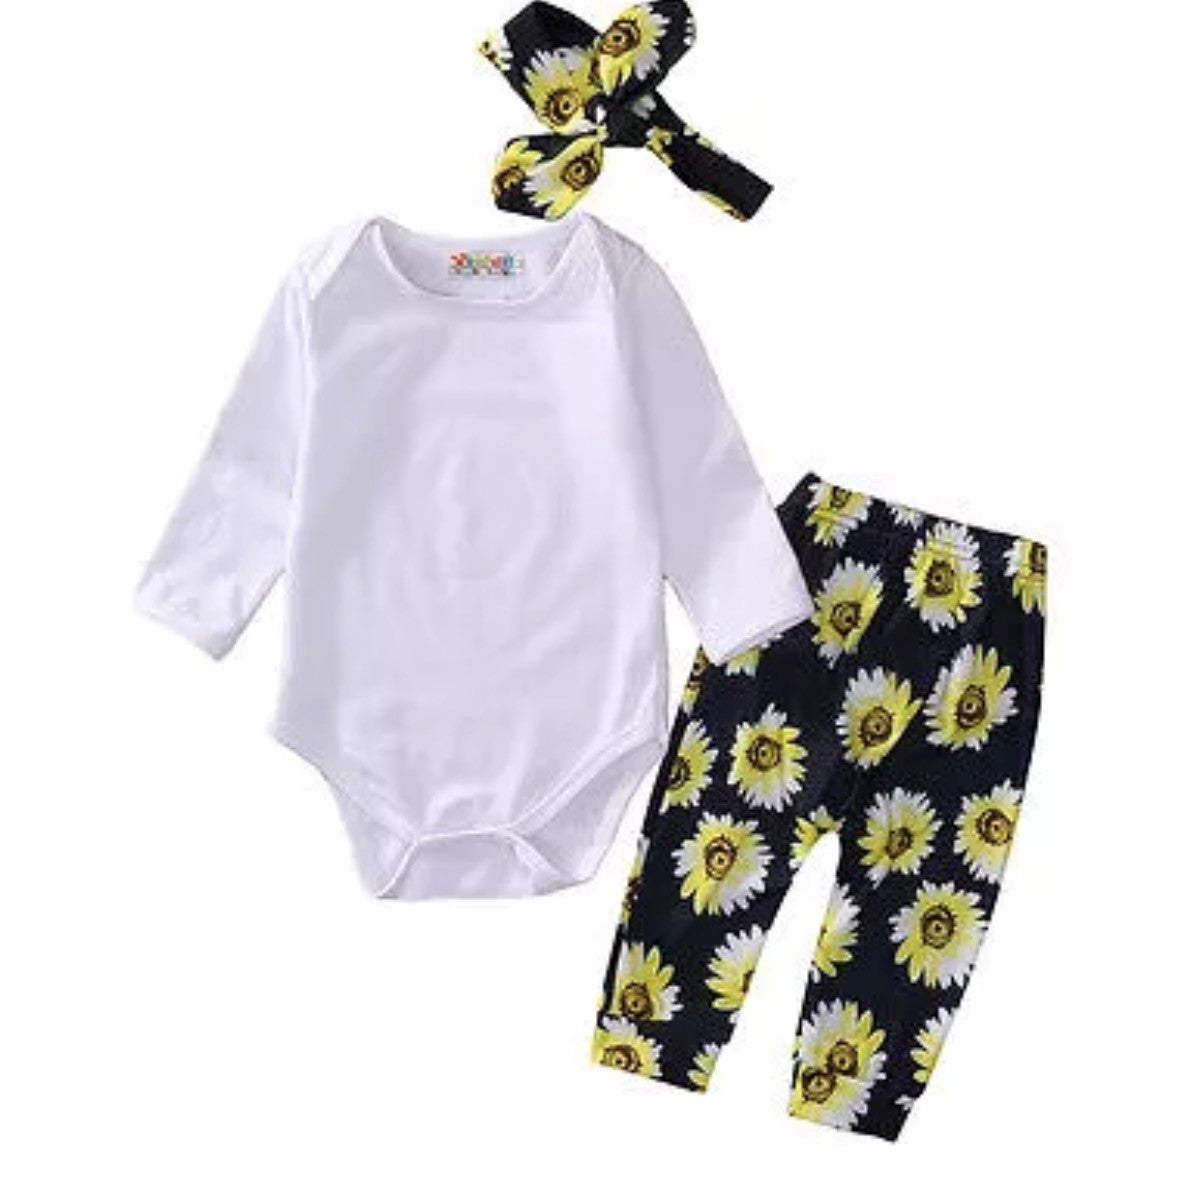 c7a09fa09b9 Baby Girl Sunflower Outfit l Cute Girls Outfit